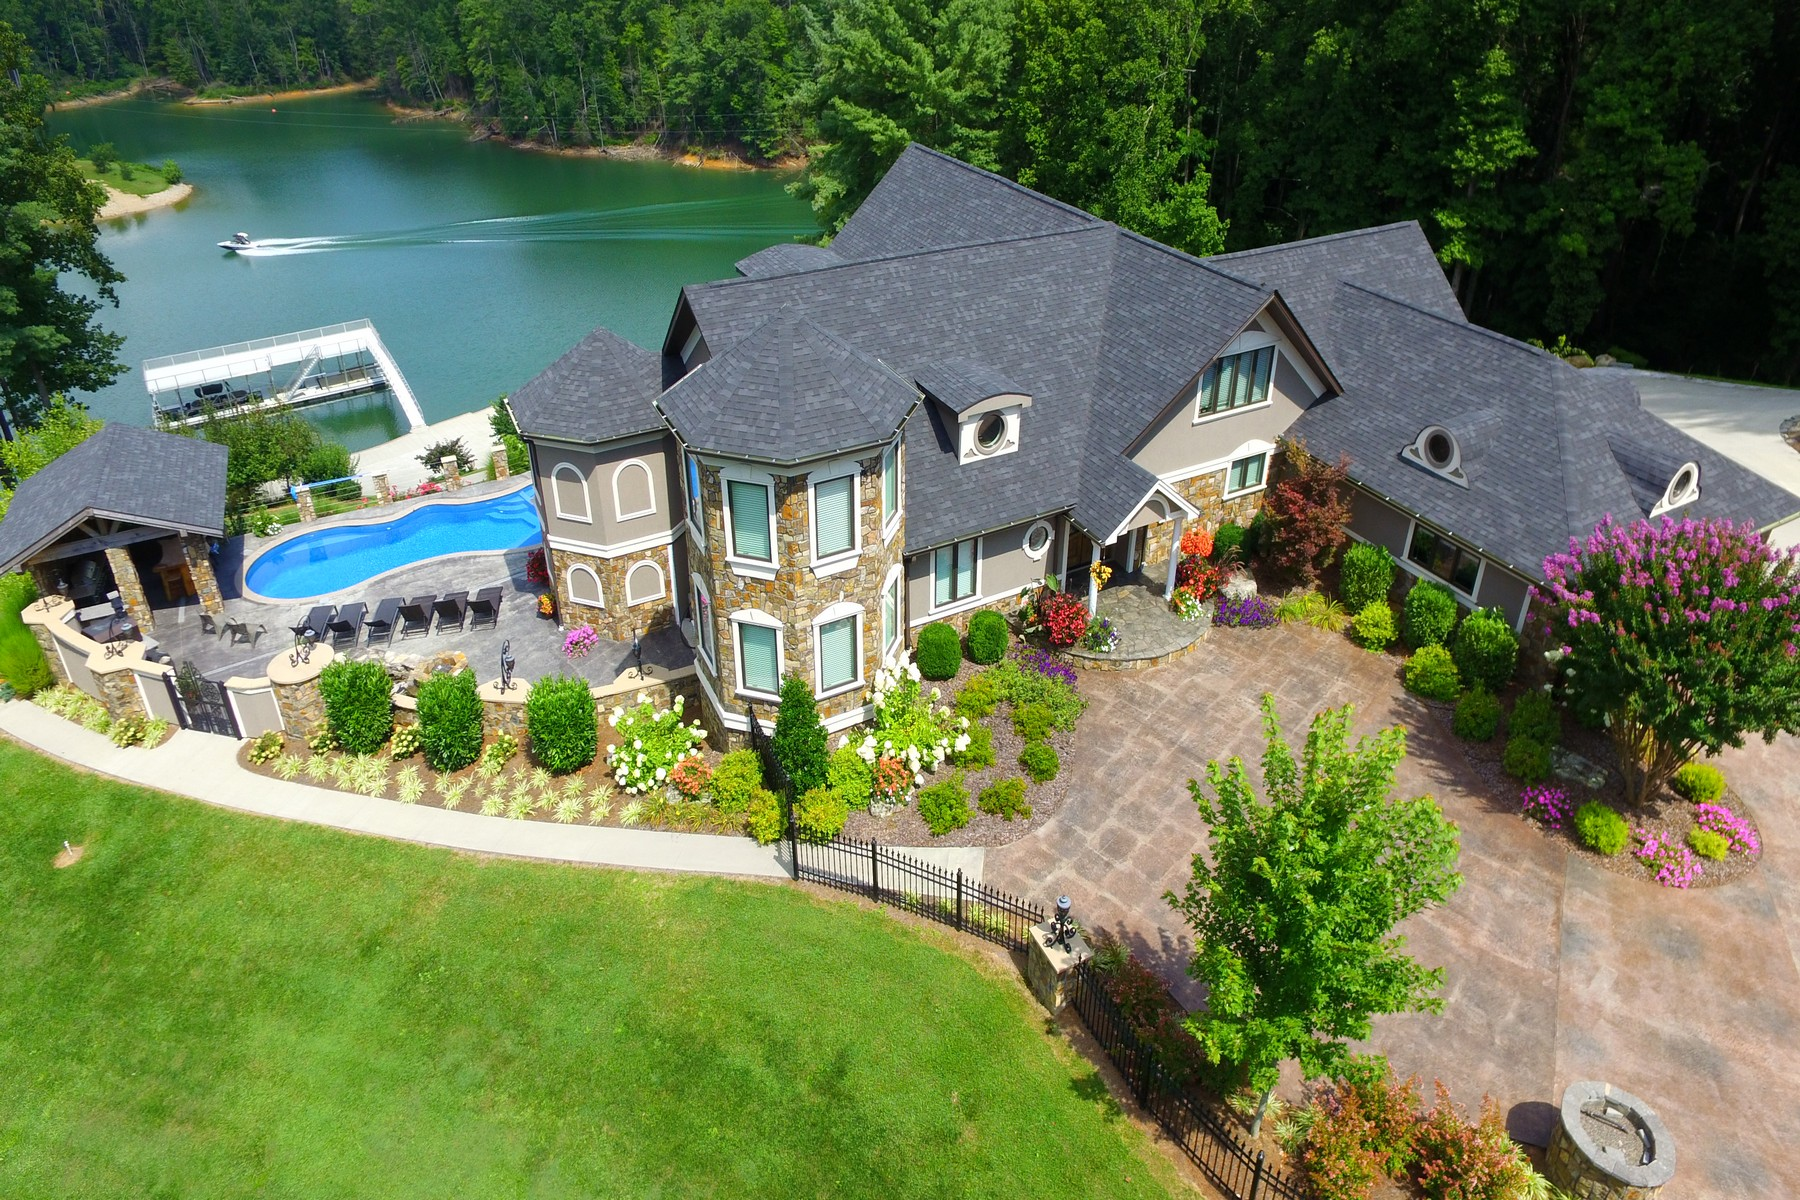 Single Family Home for Sale at Spectacular Waterfront Estate 381 Big Oak Drive, Butler, Tennessee, 37640 United States